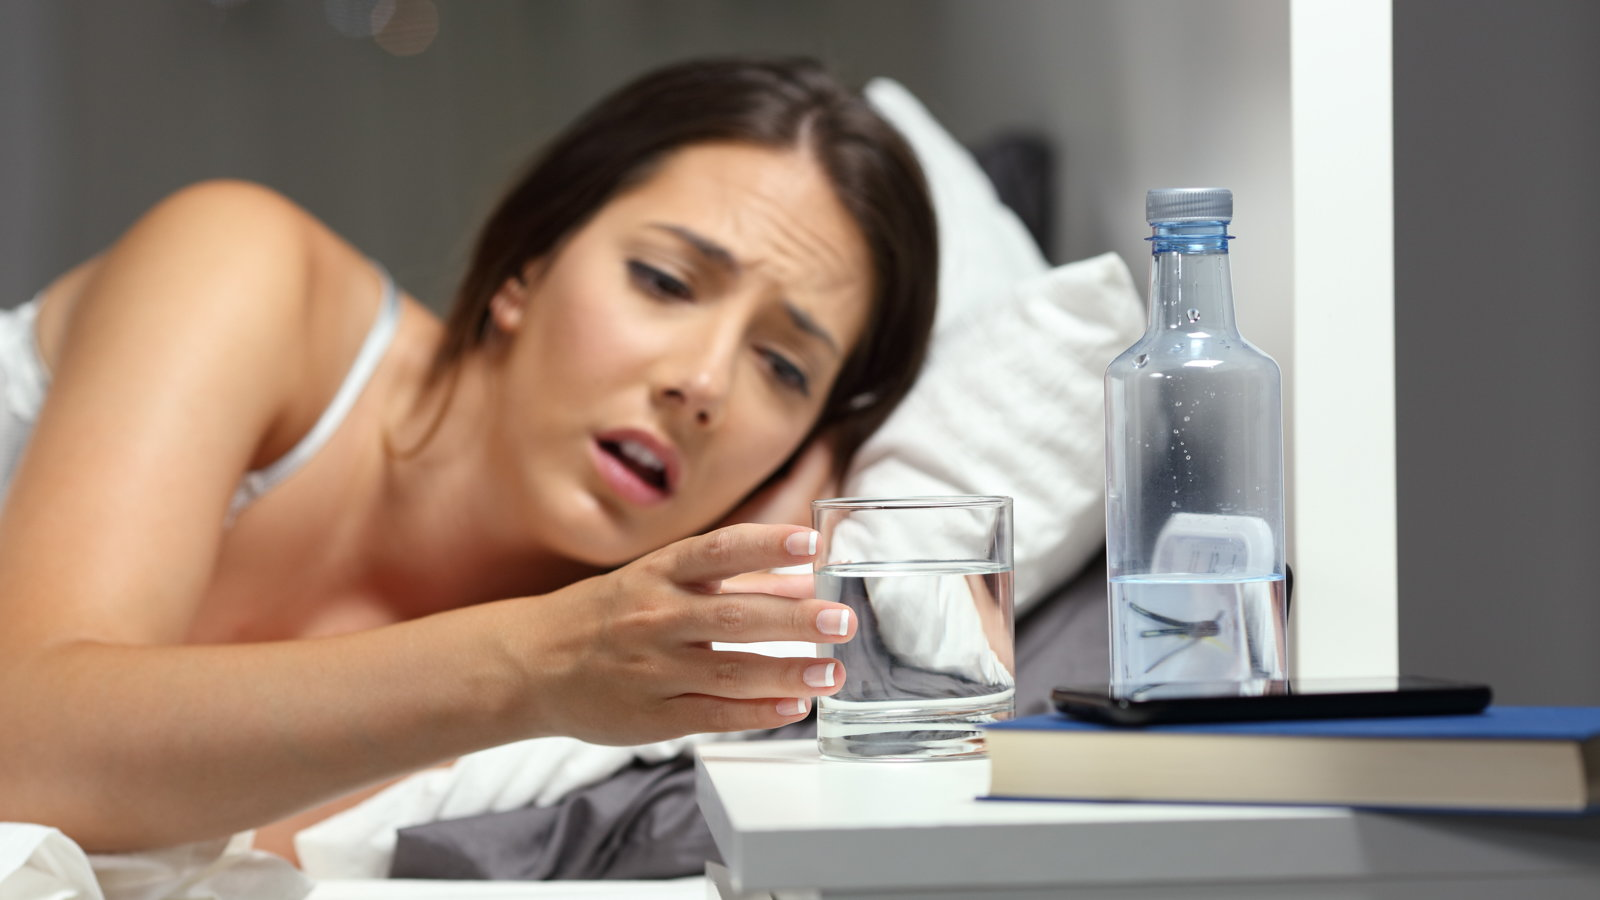 dehydrated woman drinking water